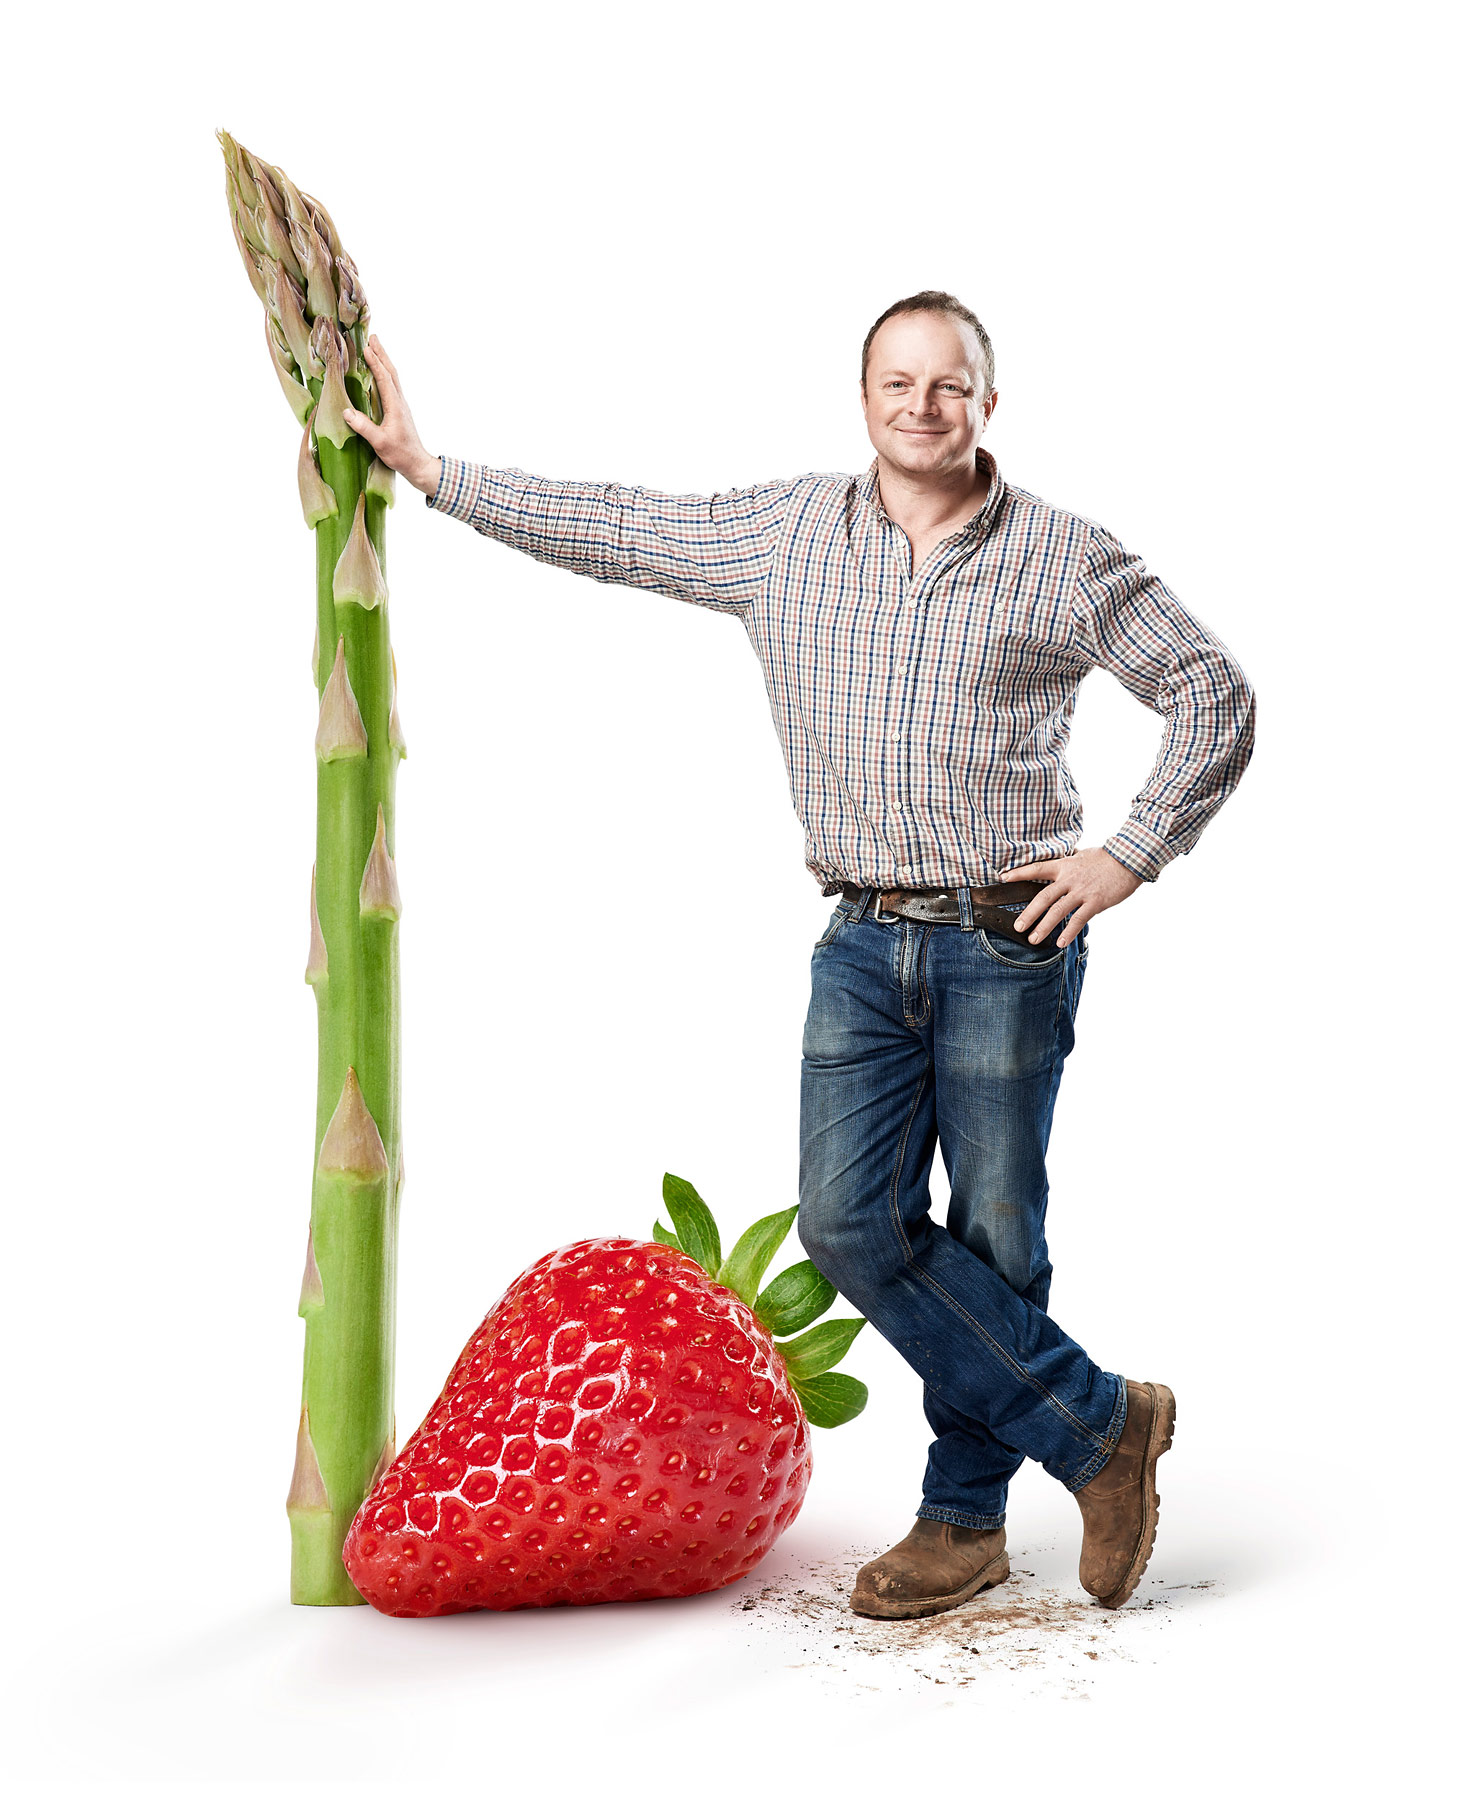 Charlie Tacon with a giant asparagus and strawberry